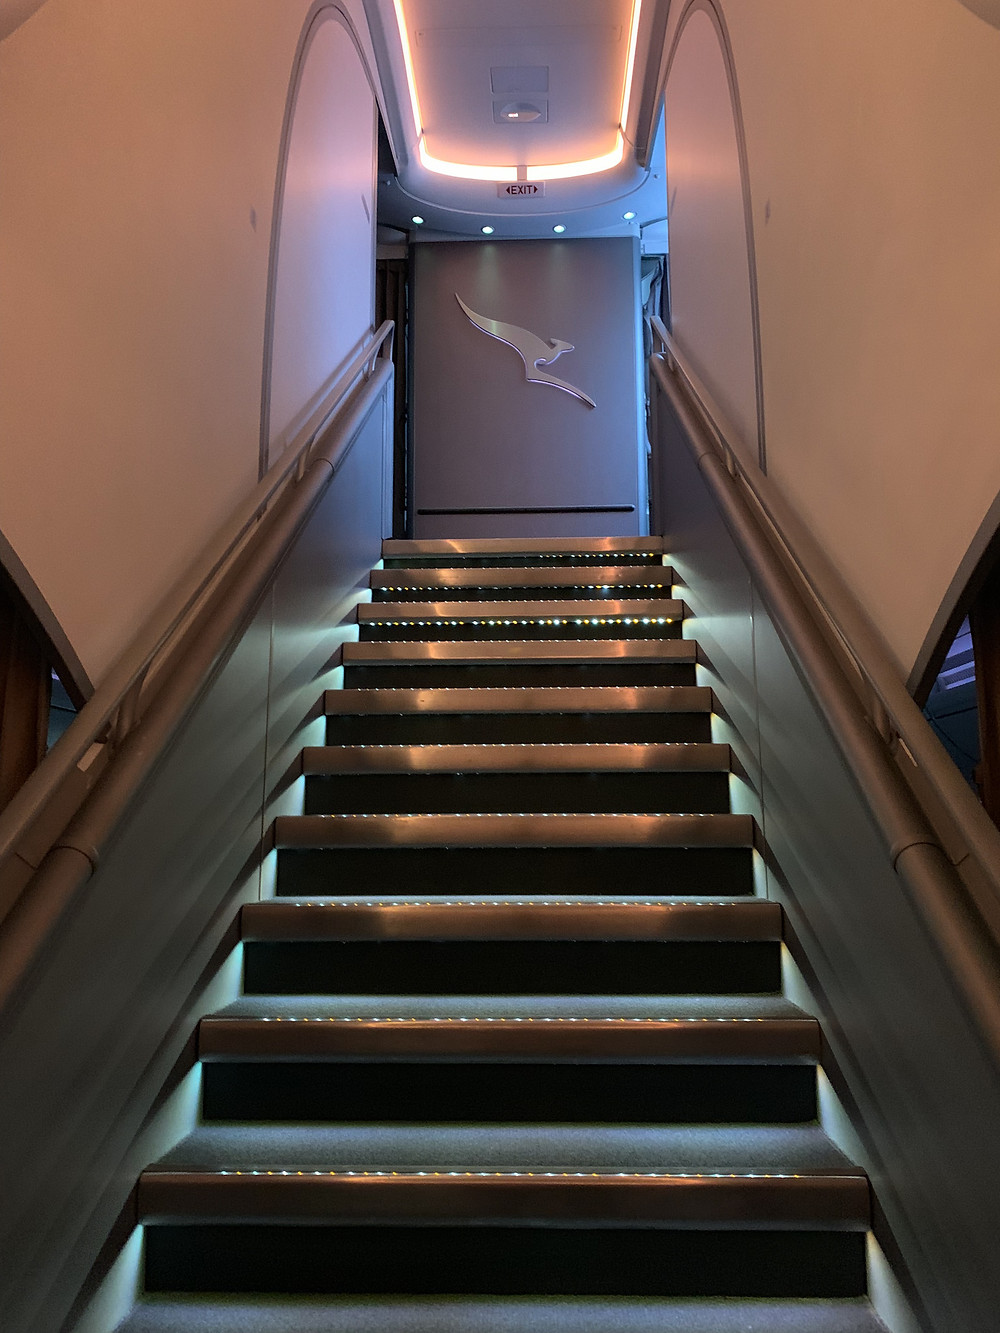 Staircase looking up on the Qantas Airbus A380 featuring the iconic airline logo